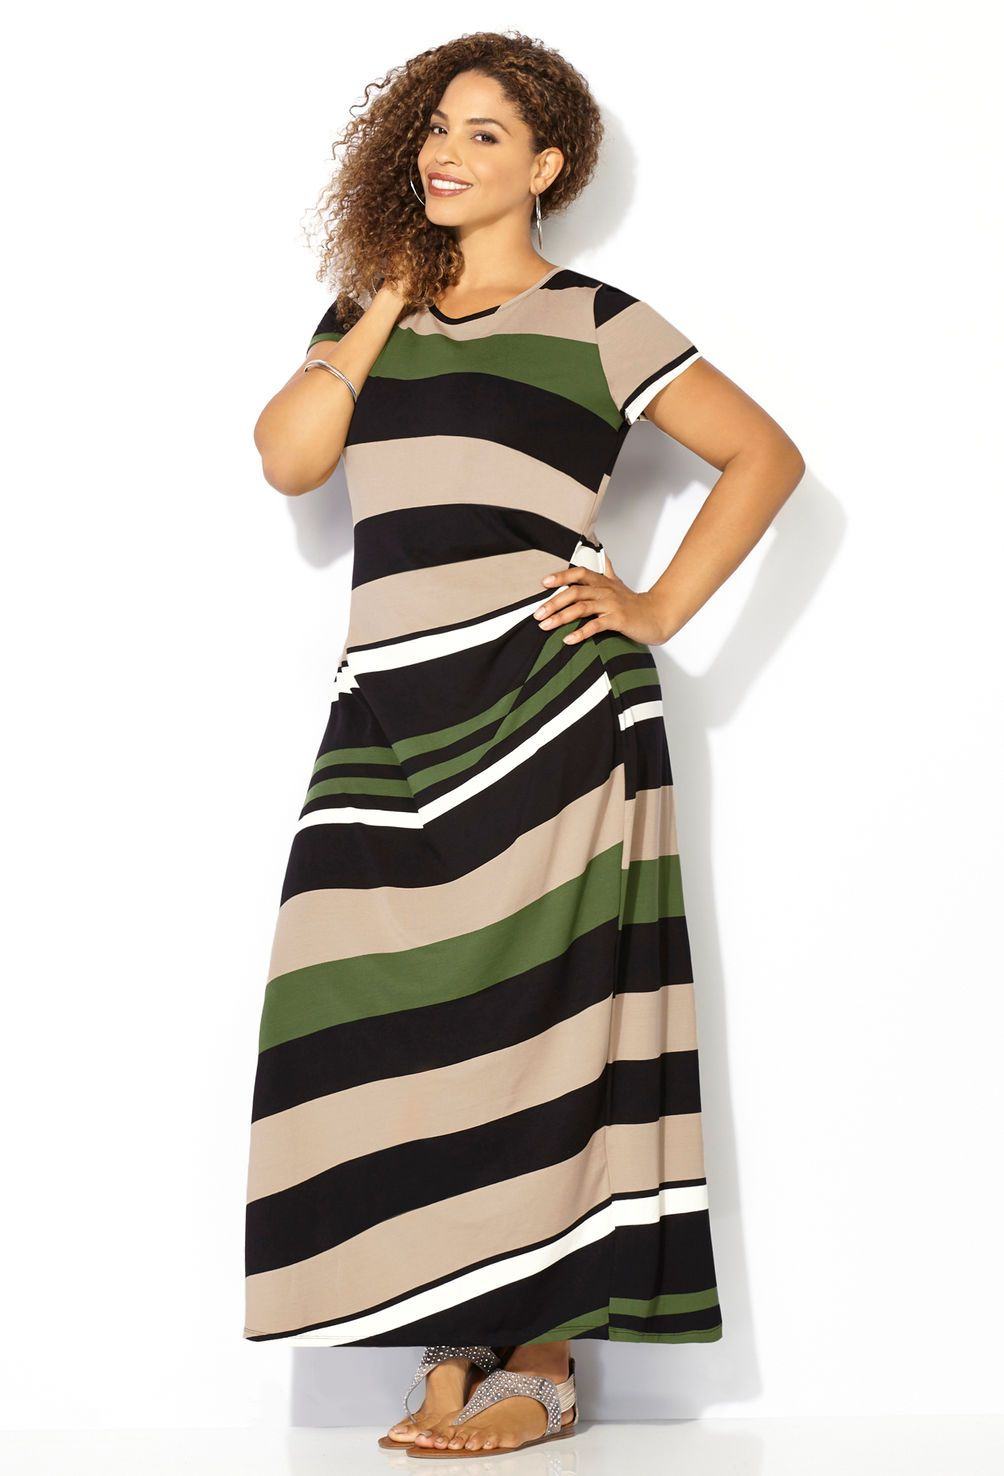 Find a flattering plus size fall maxi dress like the Striped Ruched Side Maxi Dress in sizes 14-32 available online at avenue.com. Avenue Store